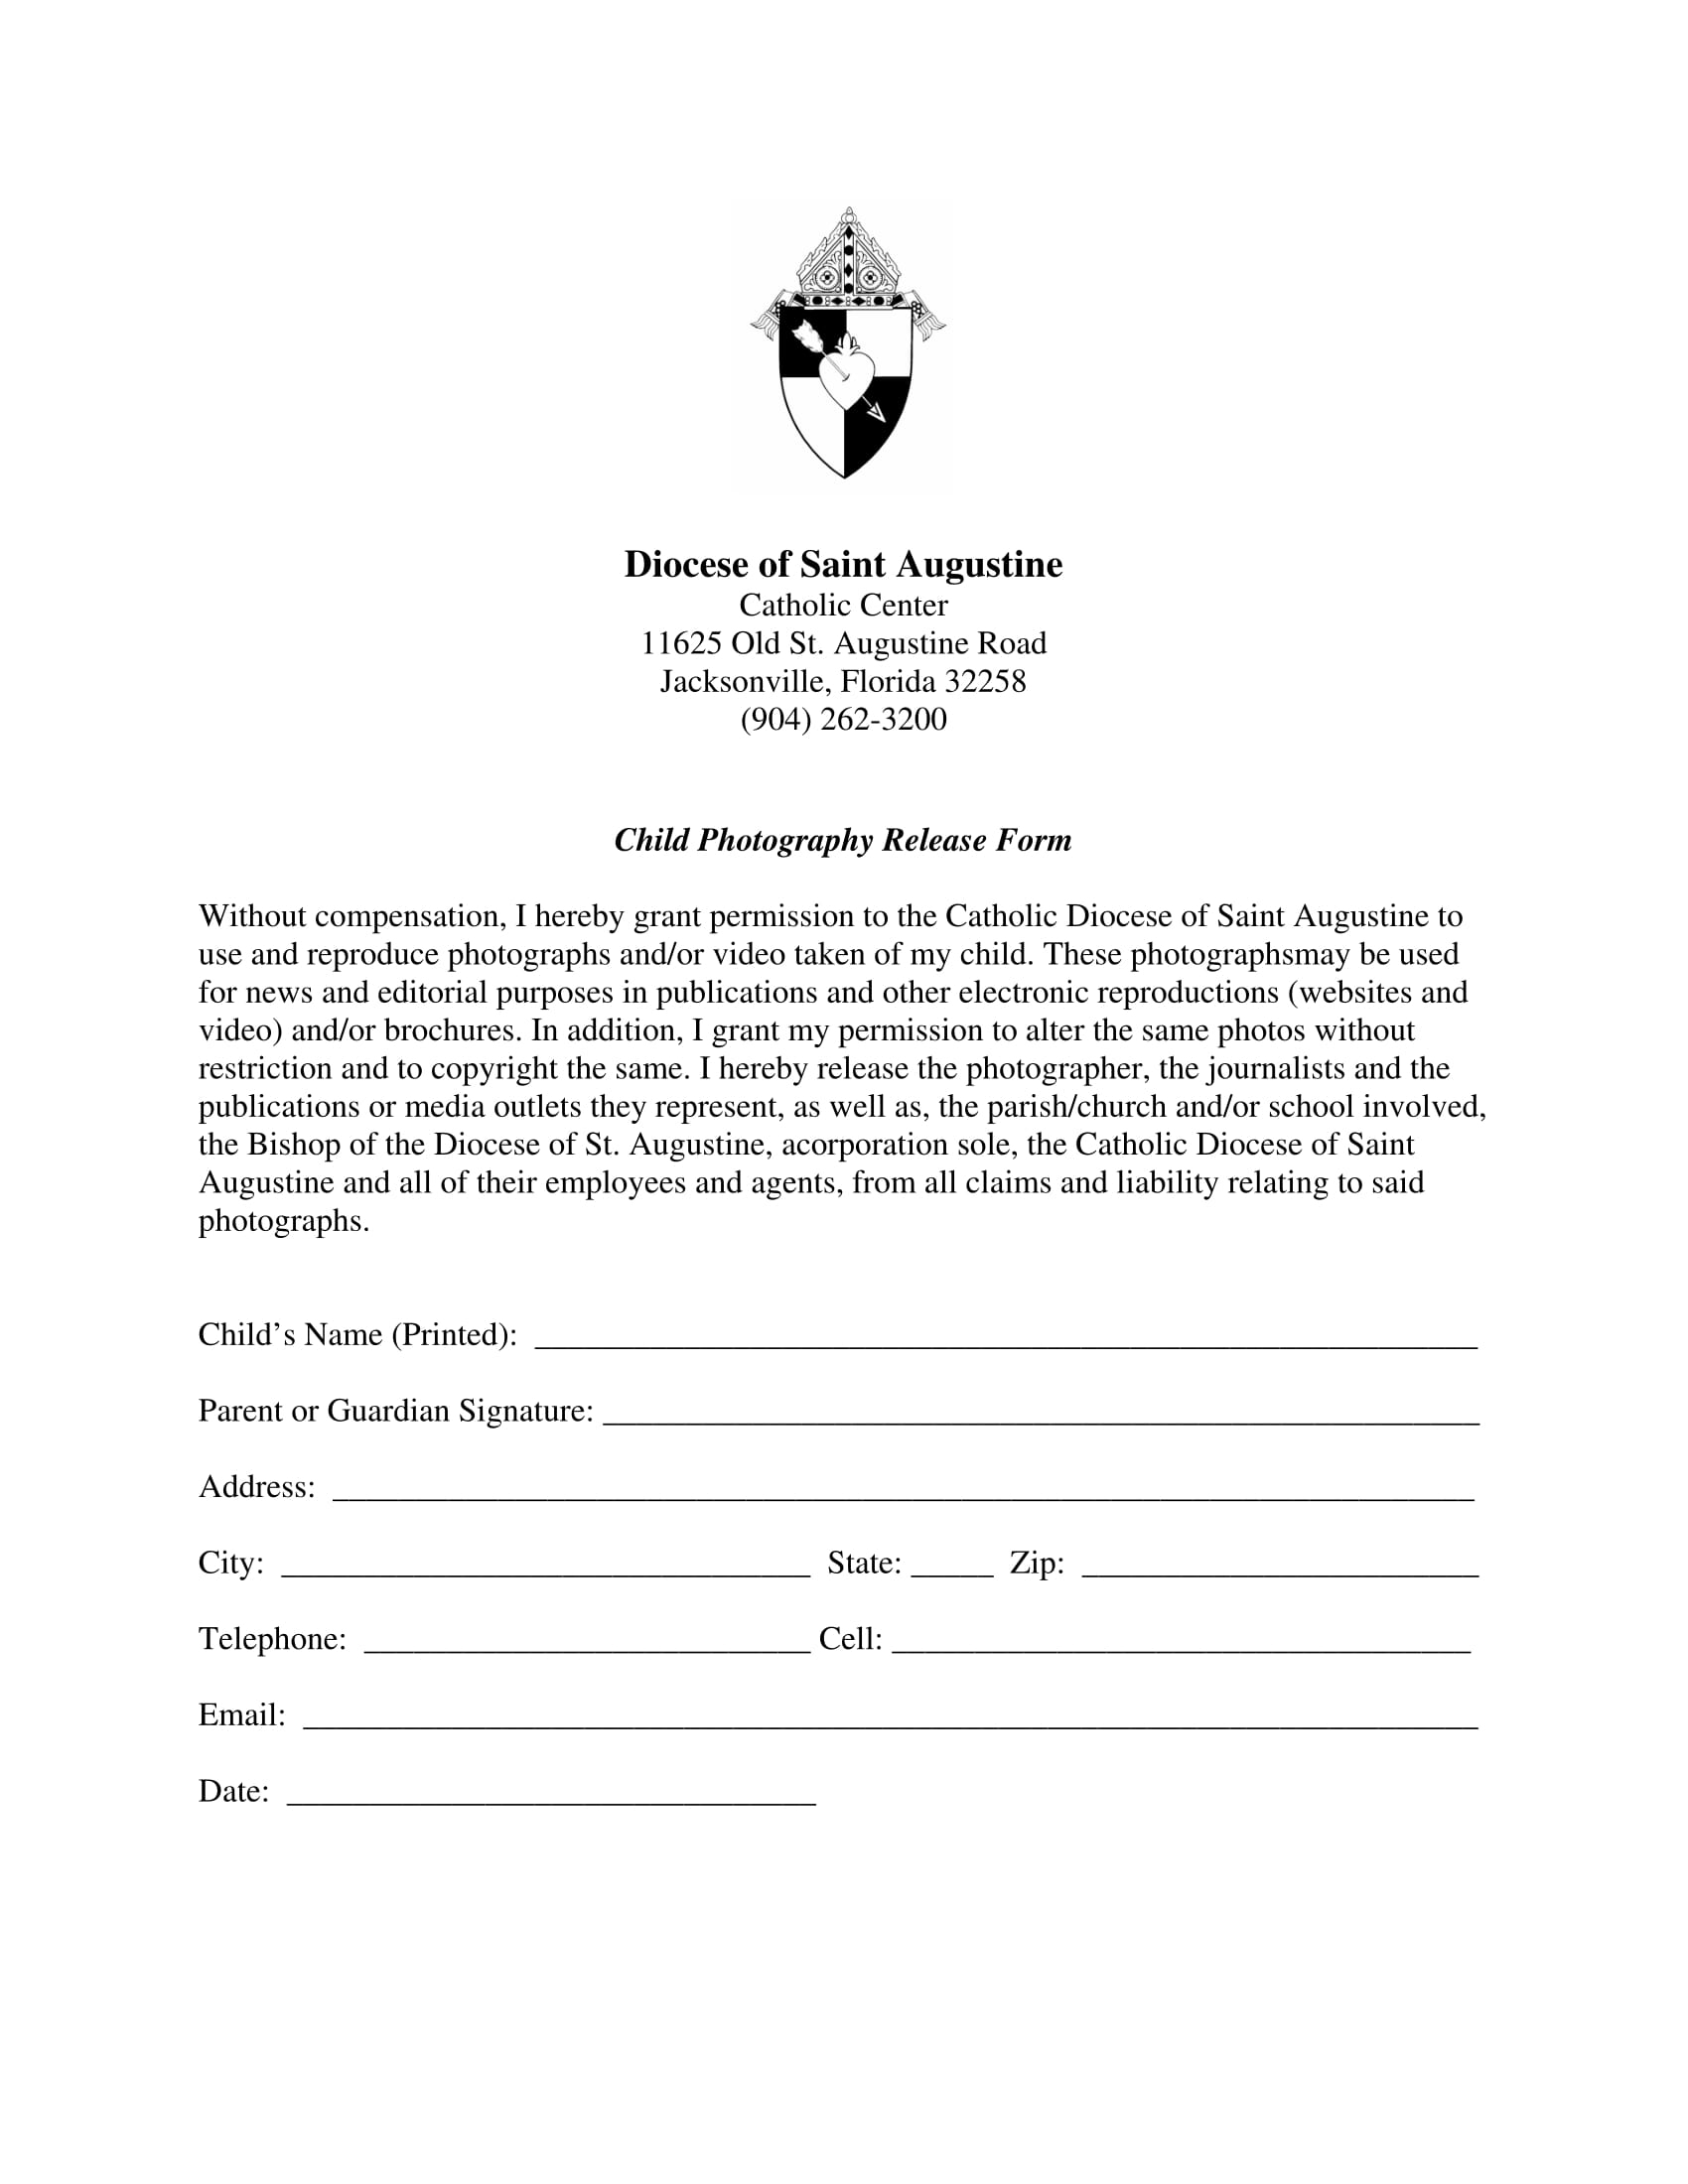 child photography release form 1